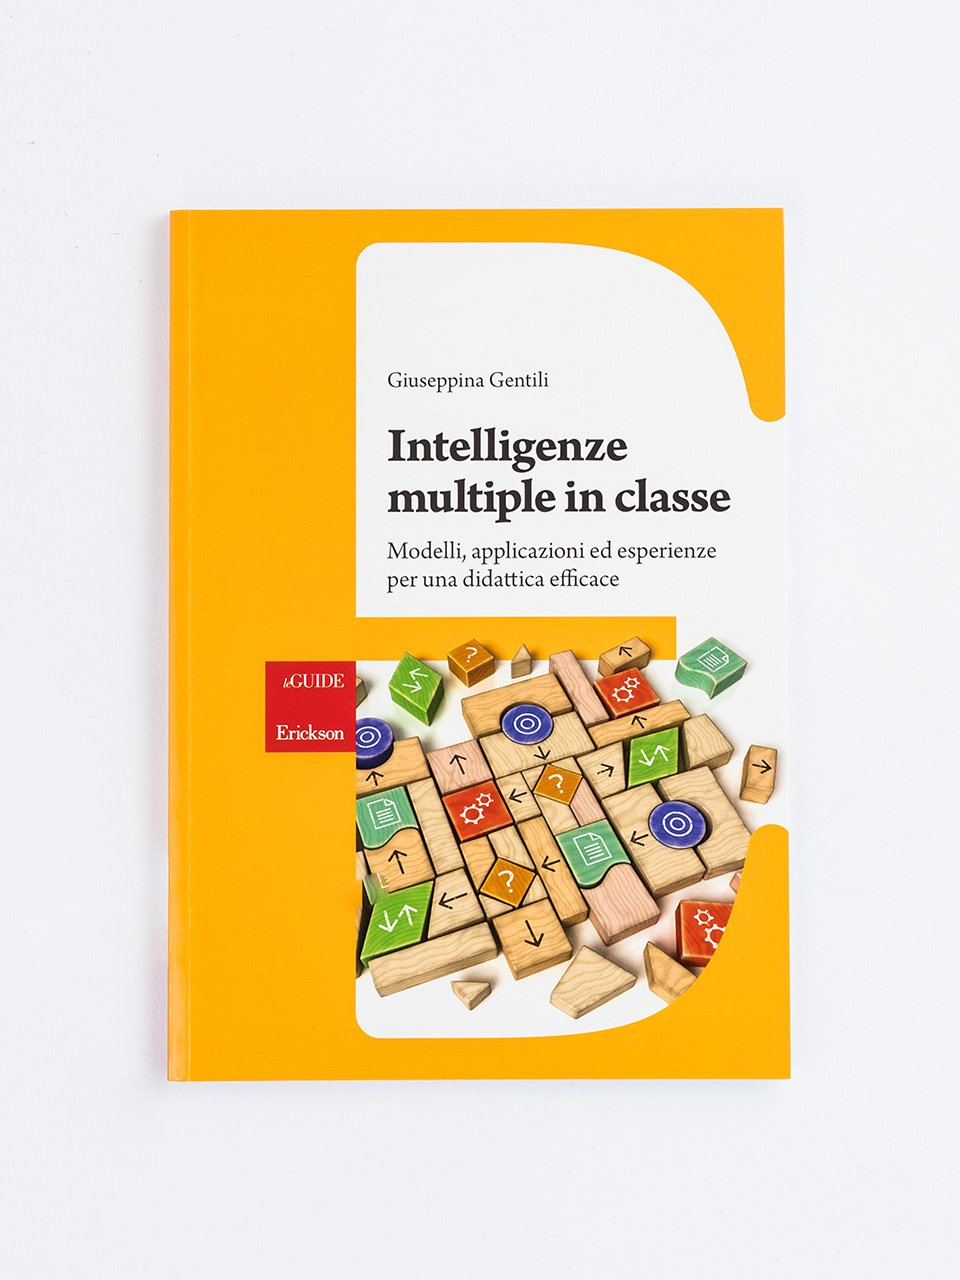 Intelligenze multiple in classe - Il cannocchiale di Galileo - Libri - Erickson